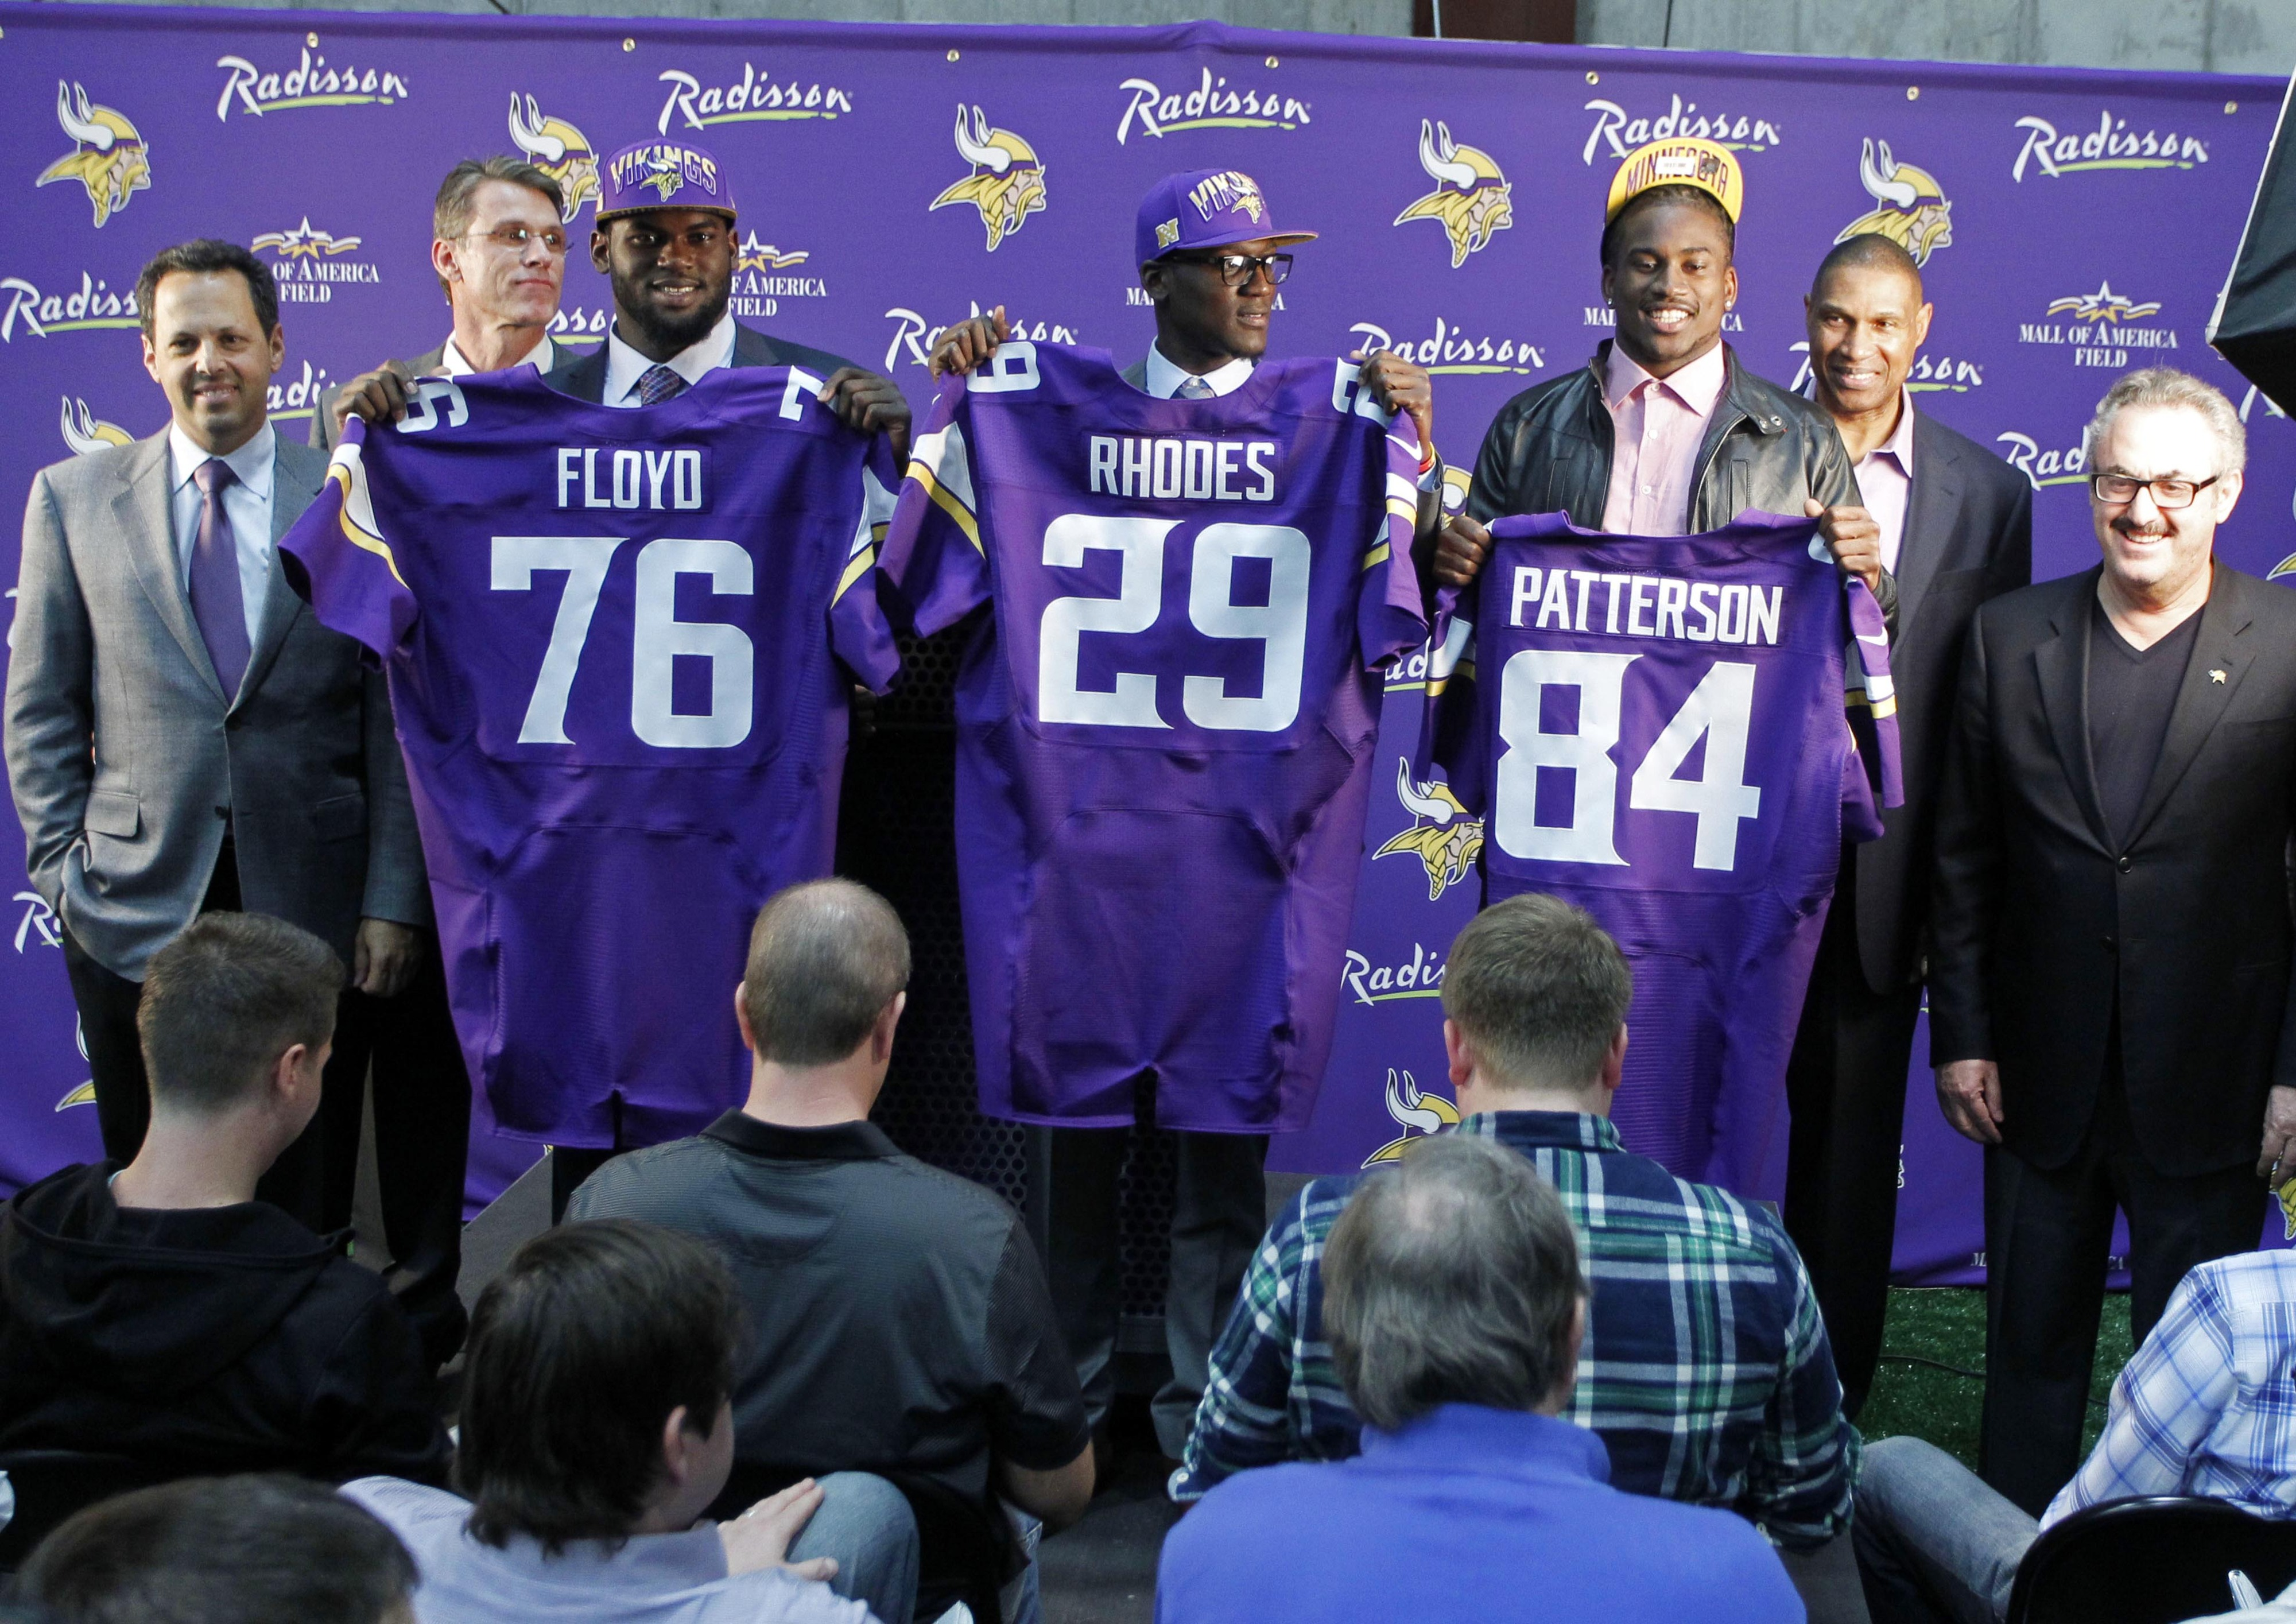 We don't have any pictures of Travis Bond available. So, here are some other guys the Vikings drafted.